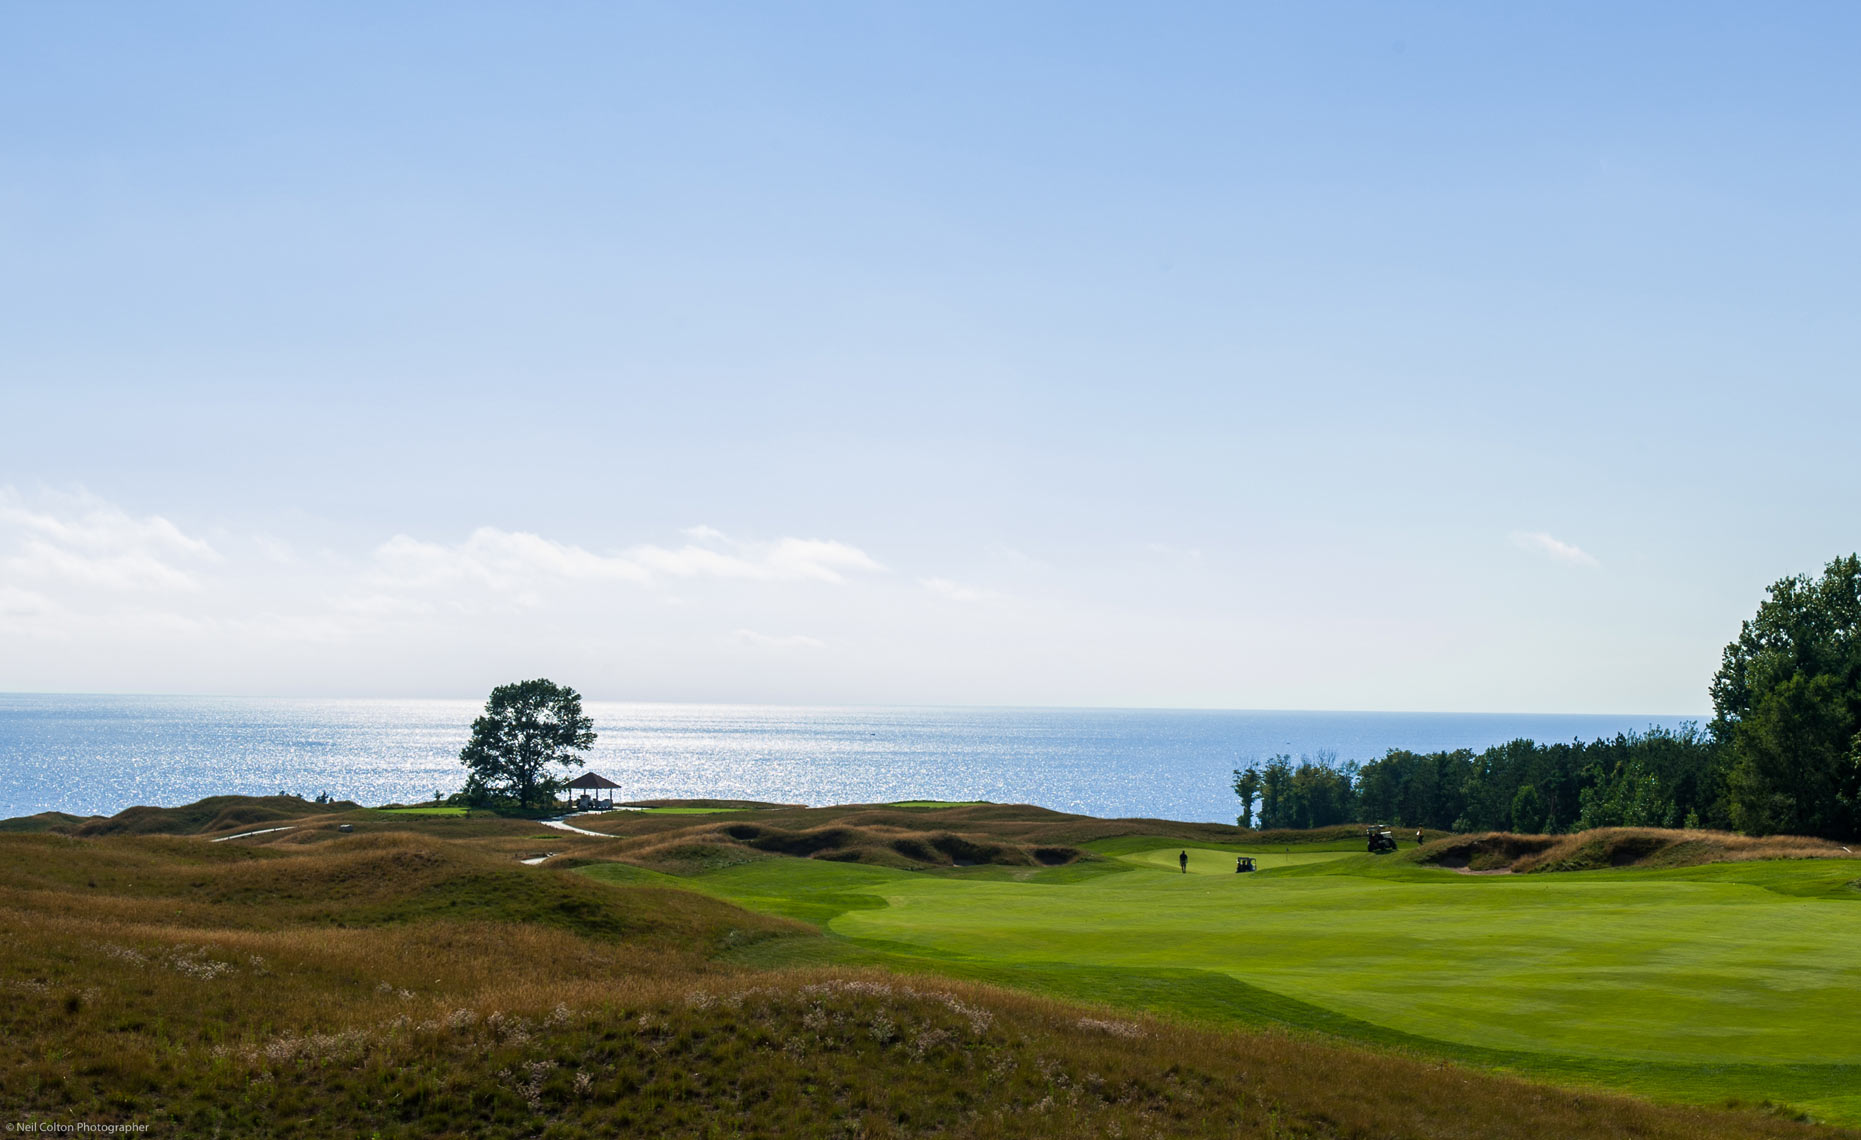 Neil-Colton-lifestyle-photographre-arcadia-bluffs-gc-2